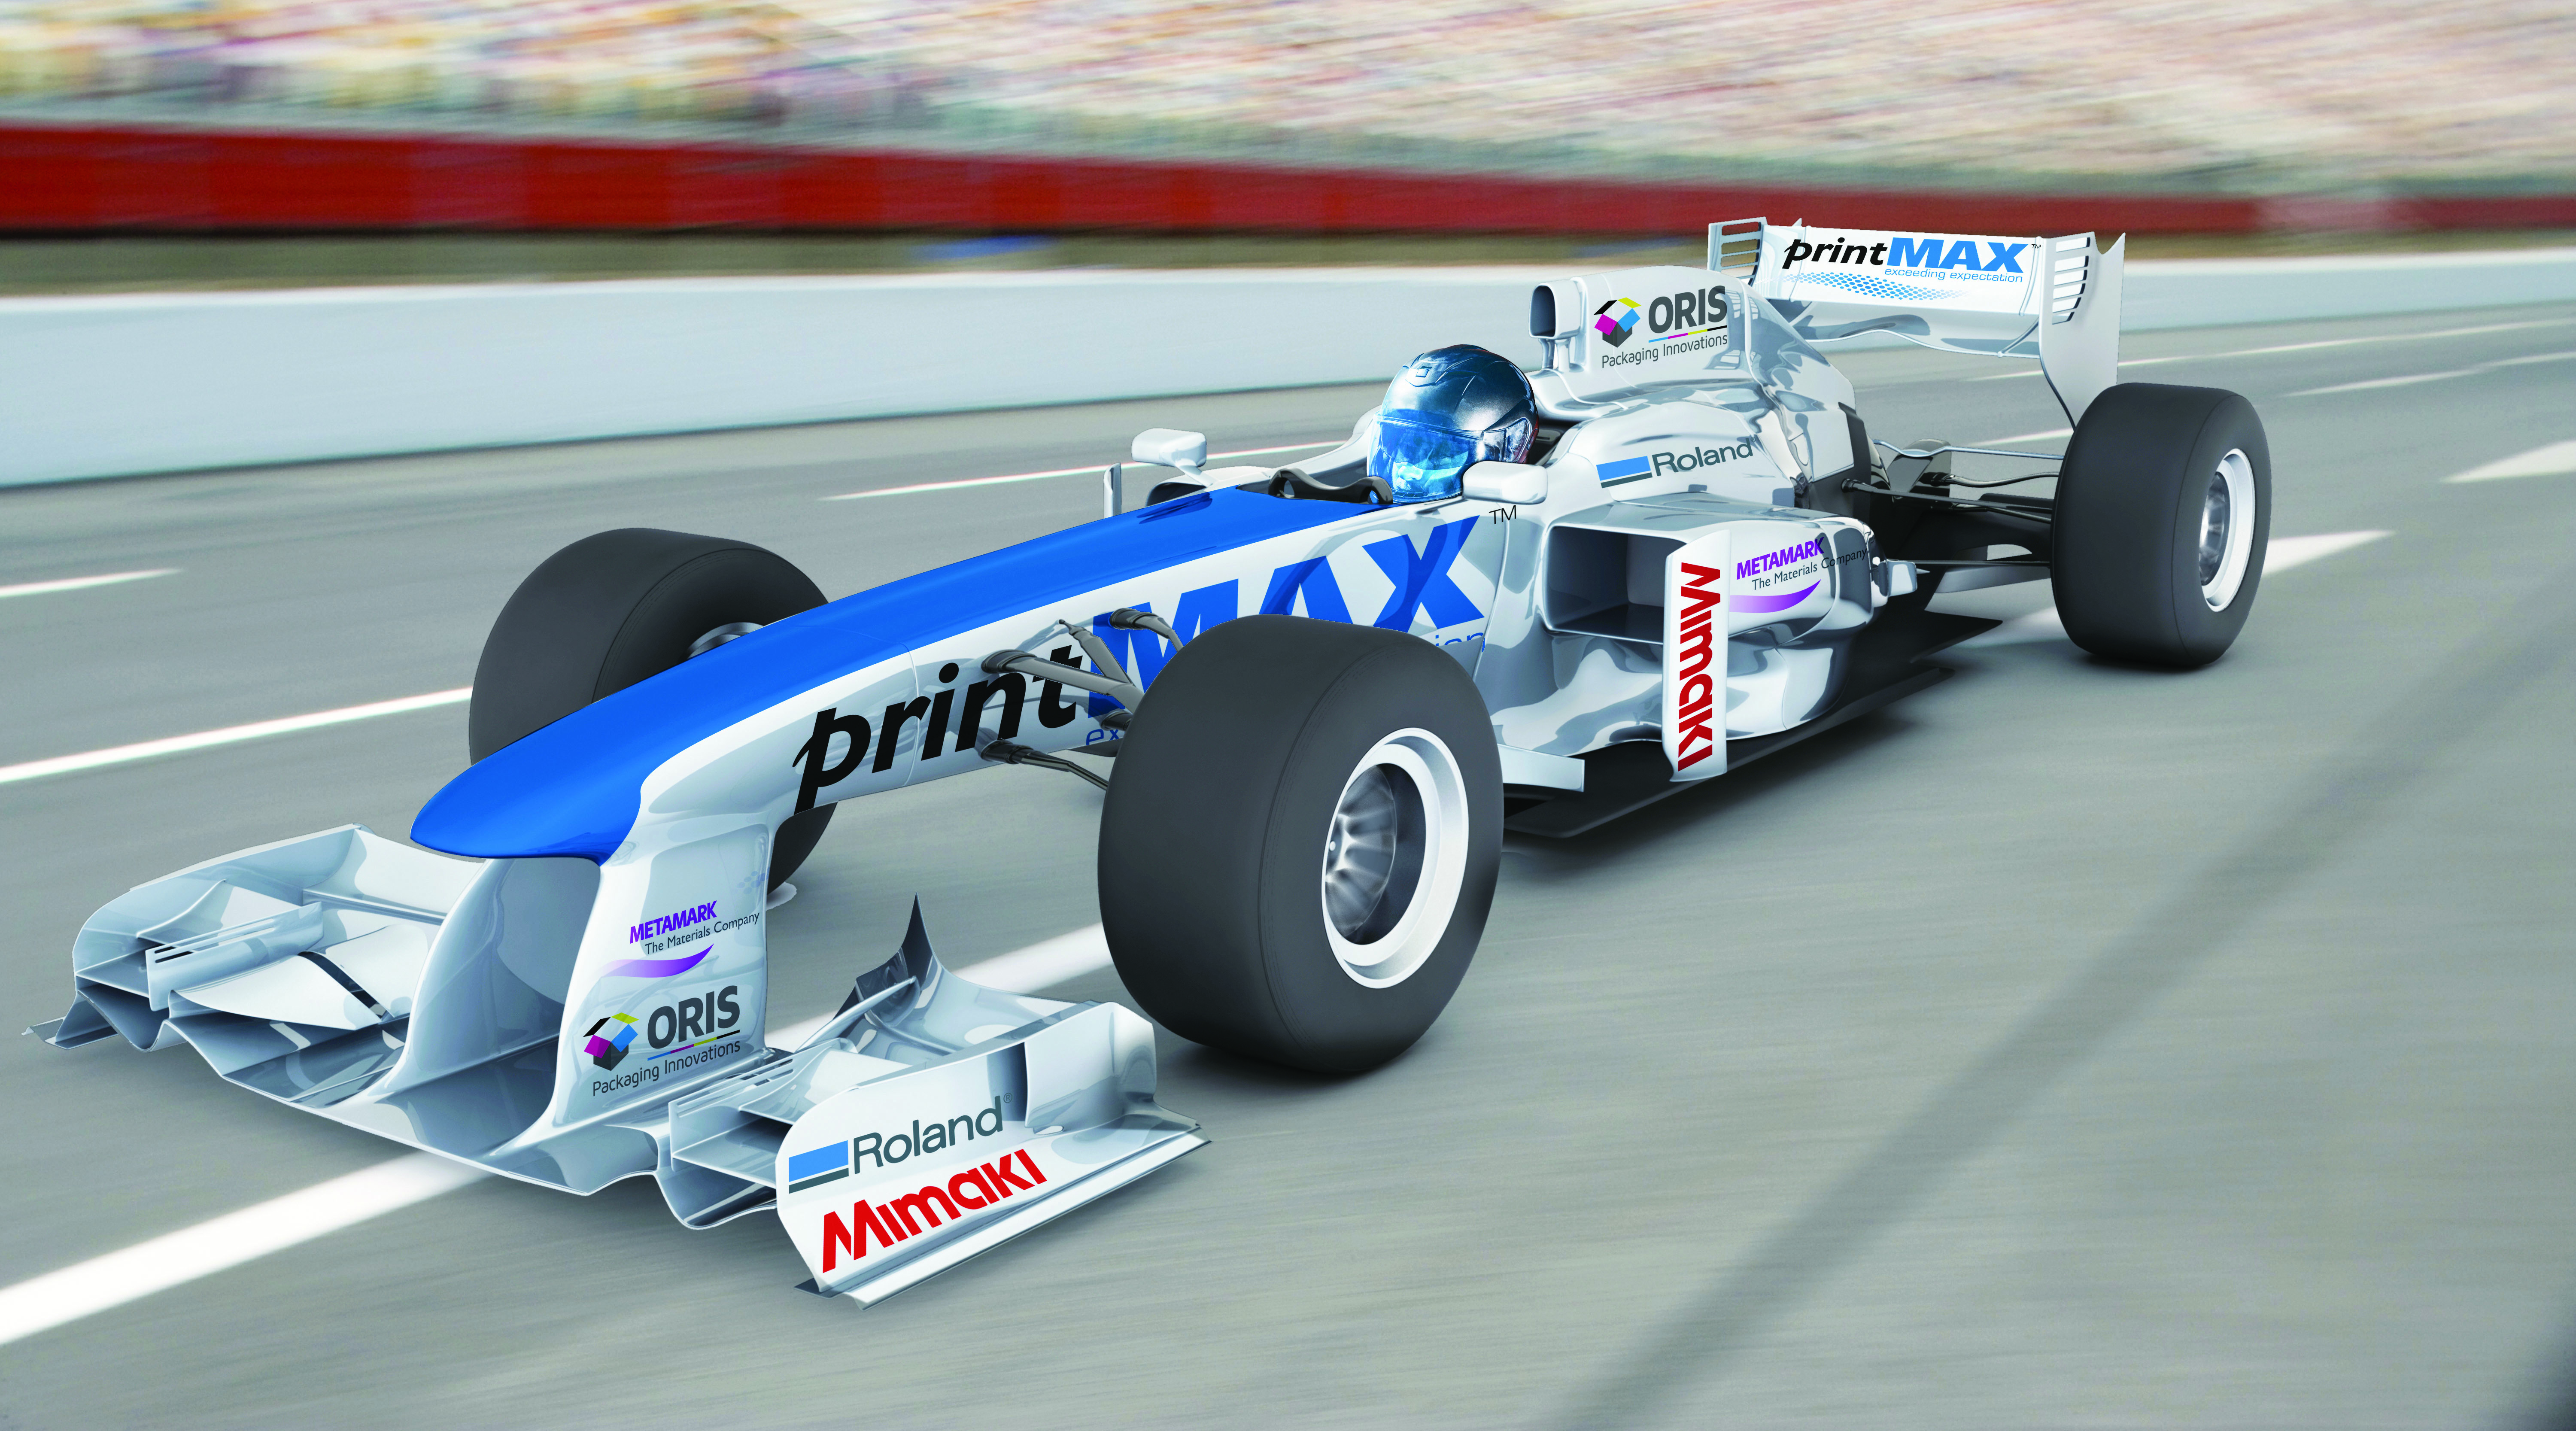 printMAX can't wait to be a part of the action this summer